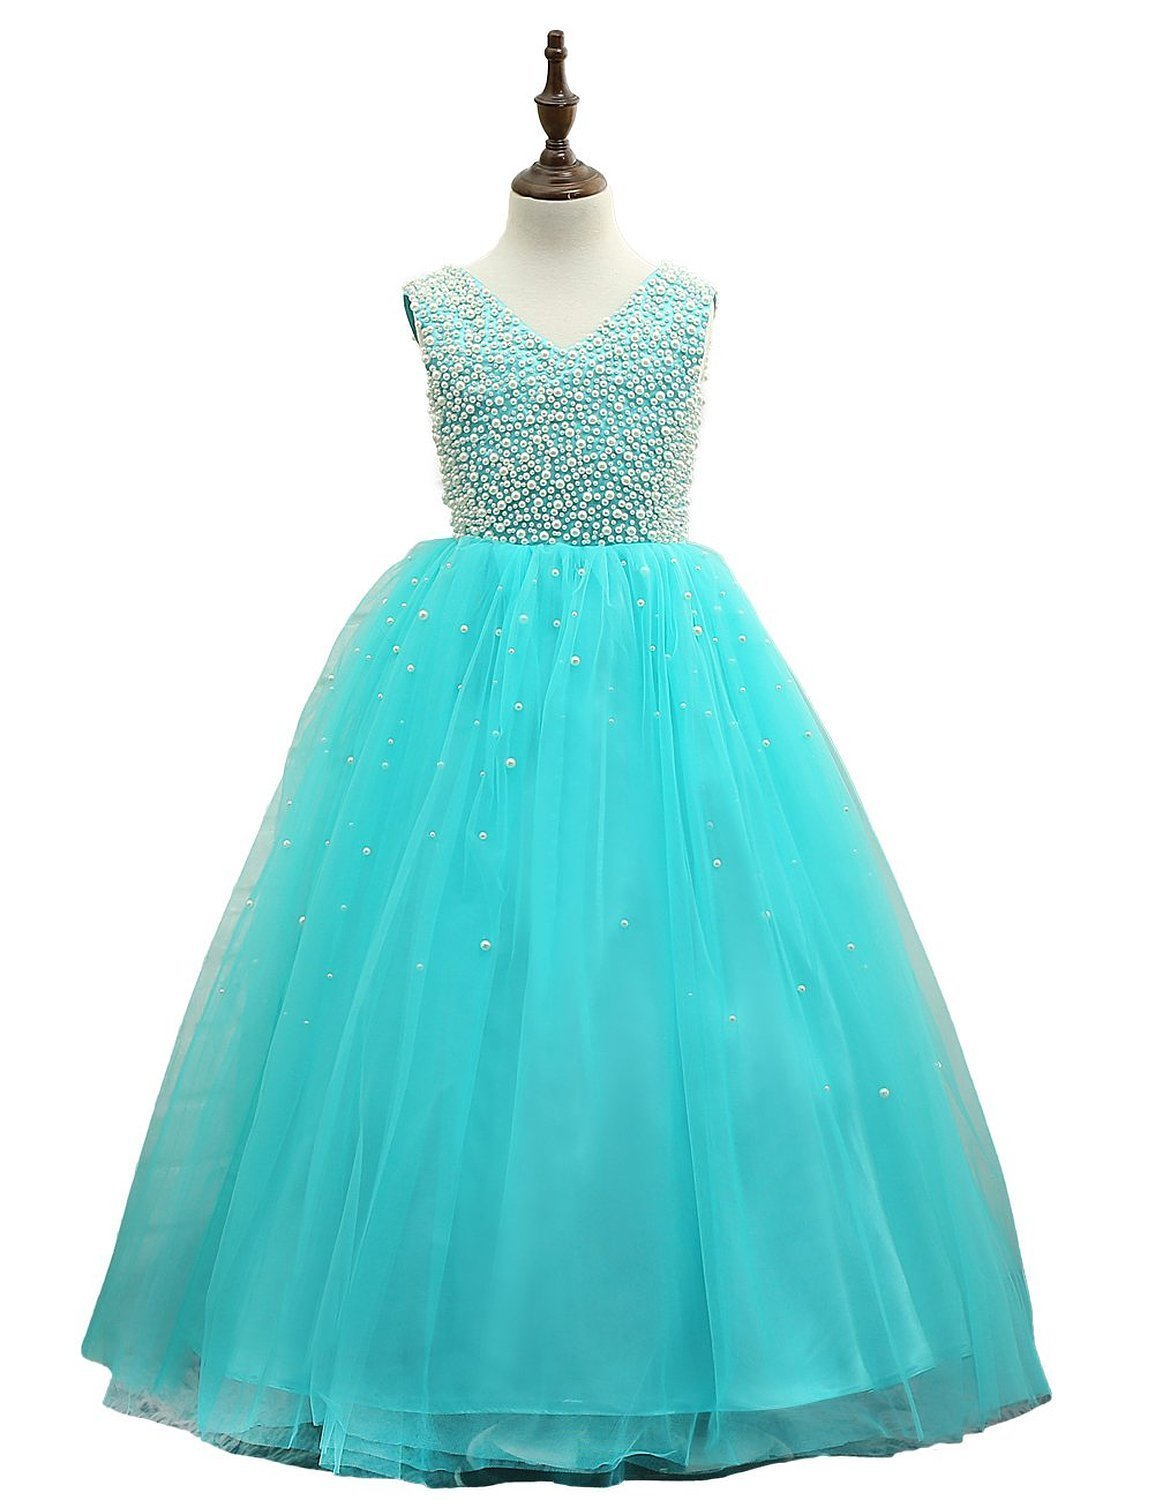 Pretty Turquoise Tulle Flower Girl Dresses Girls First Communion ...